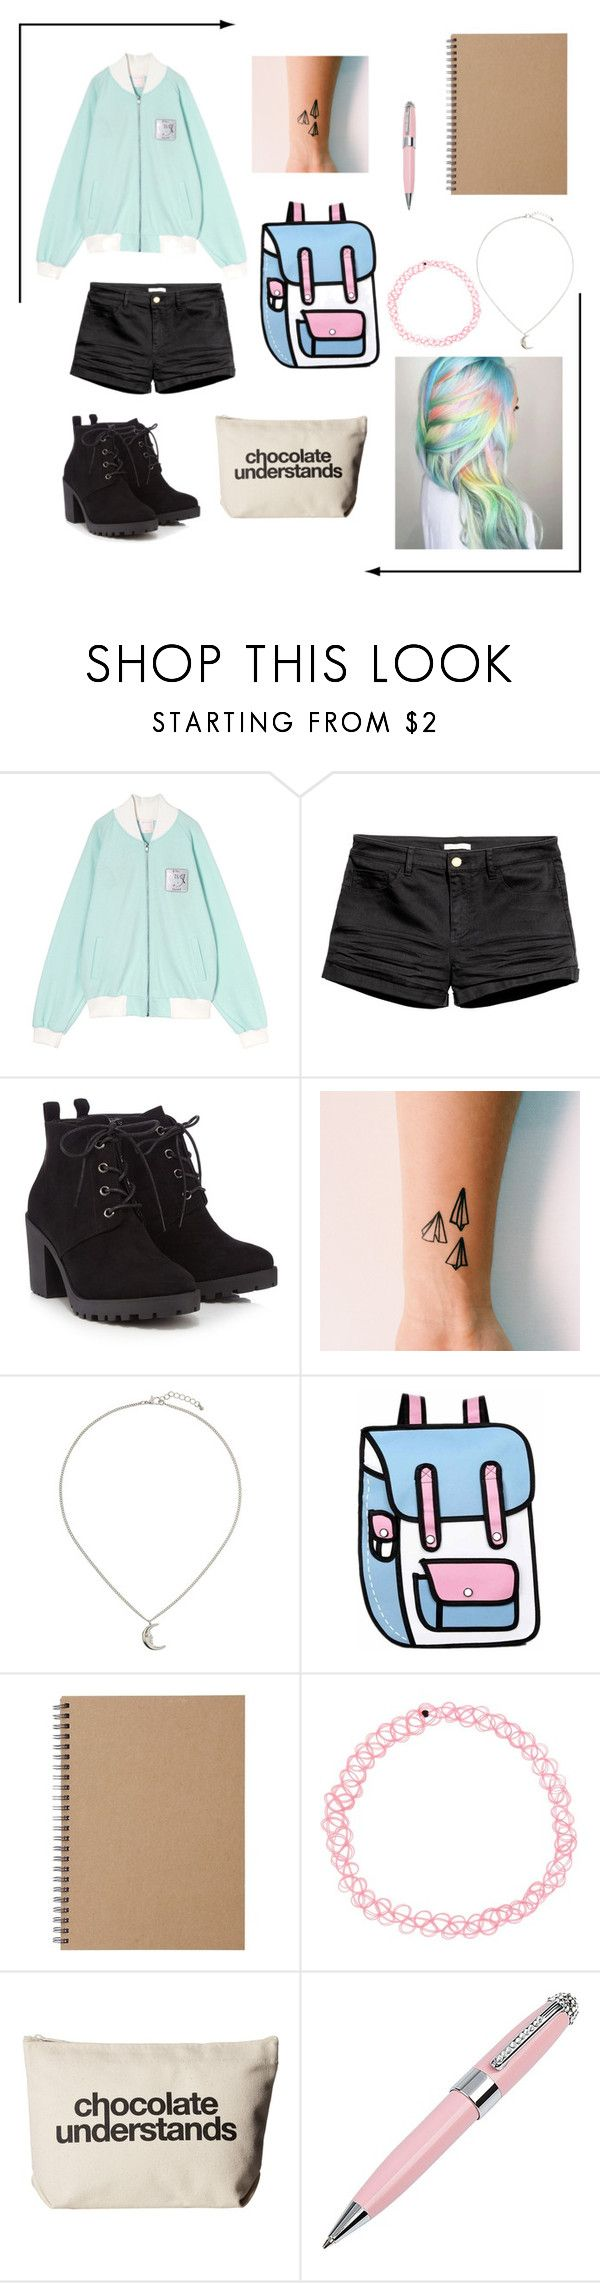 """""""thing /12"""" by keepmarchingon ❤ liked on Polyvore featuring Red Herring, Topshop, Muji, Dogeared and ICE London"""